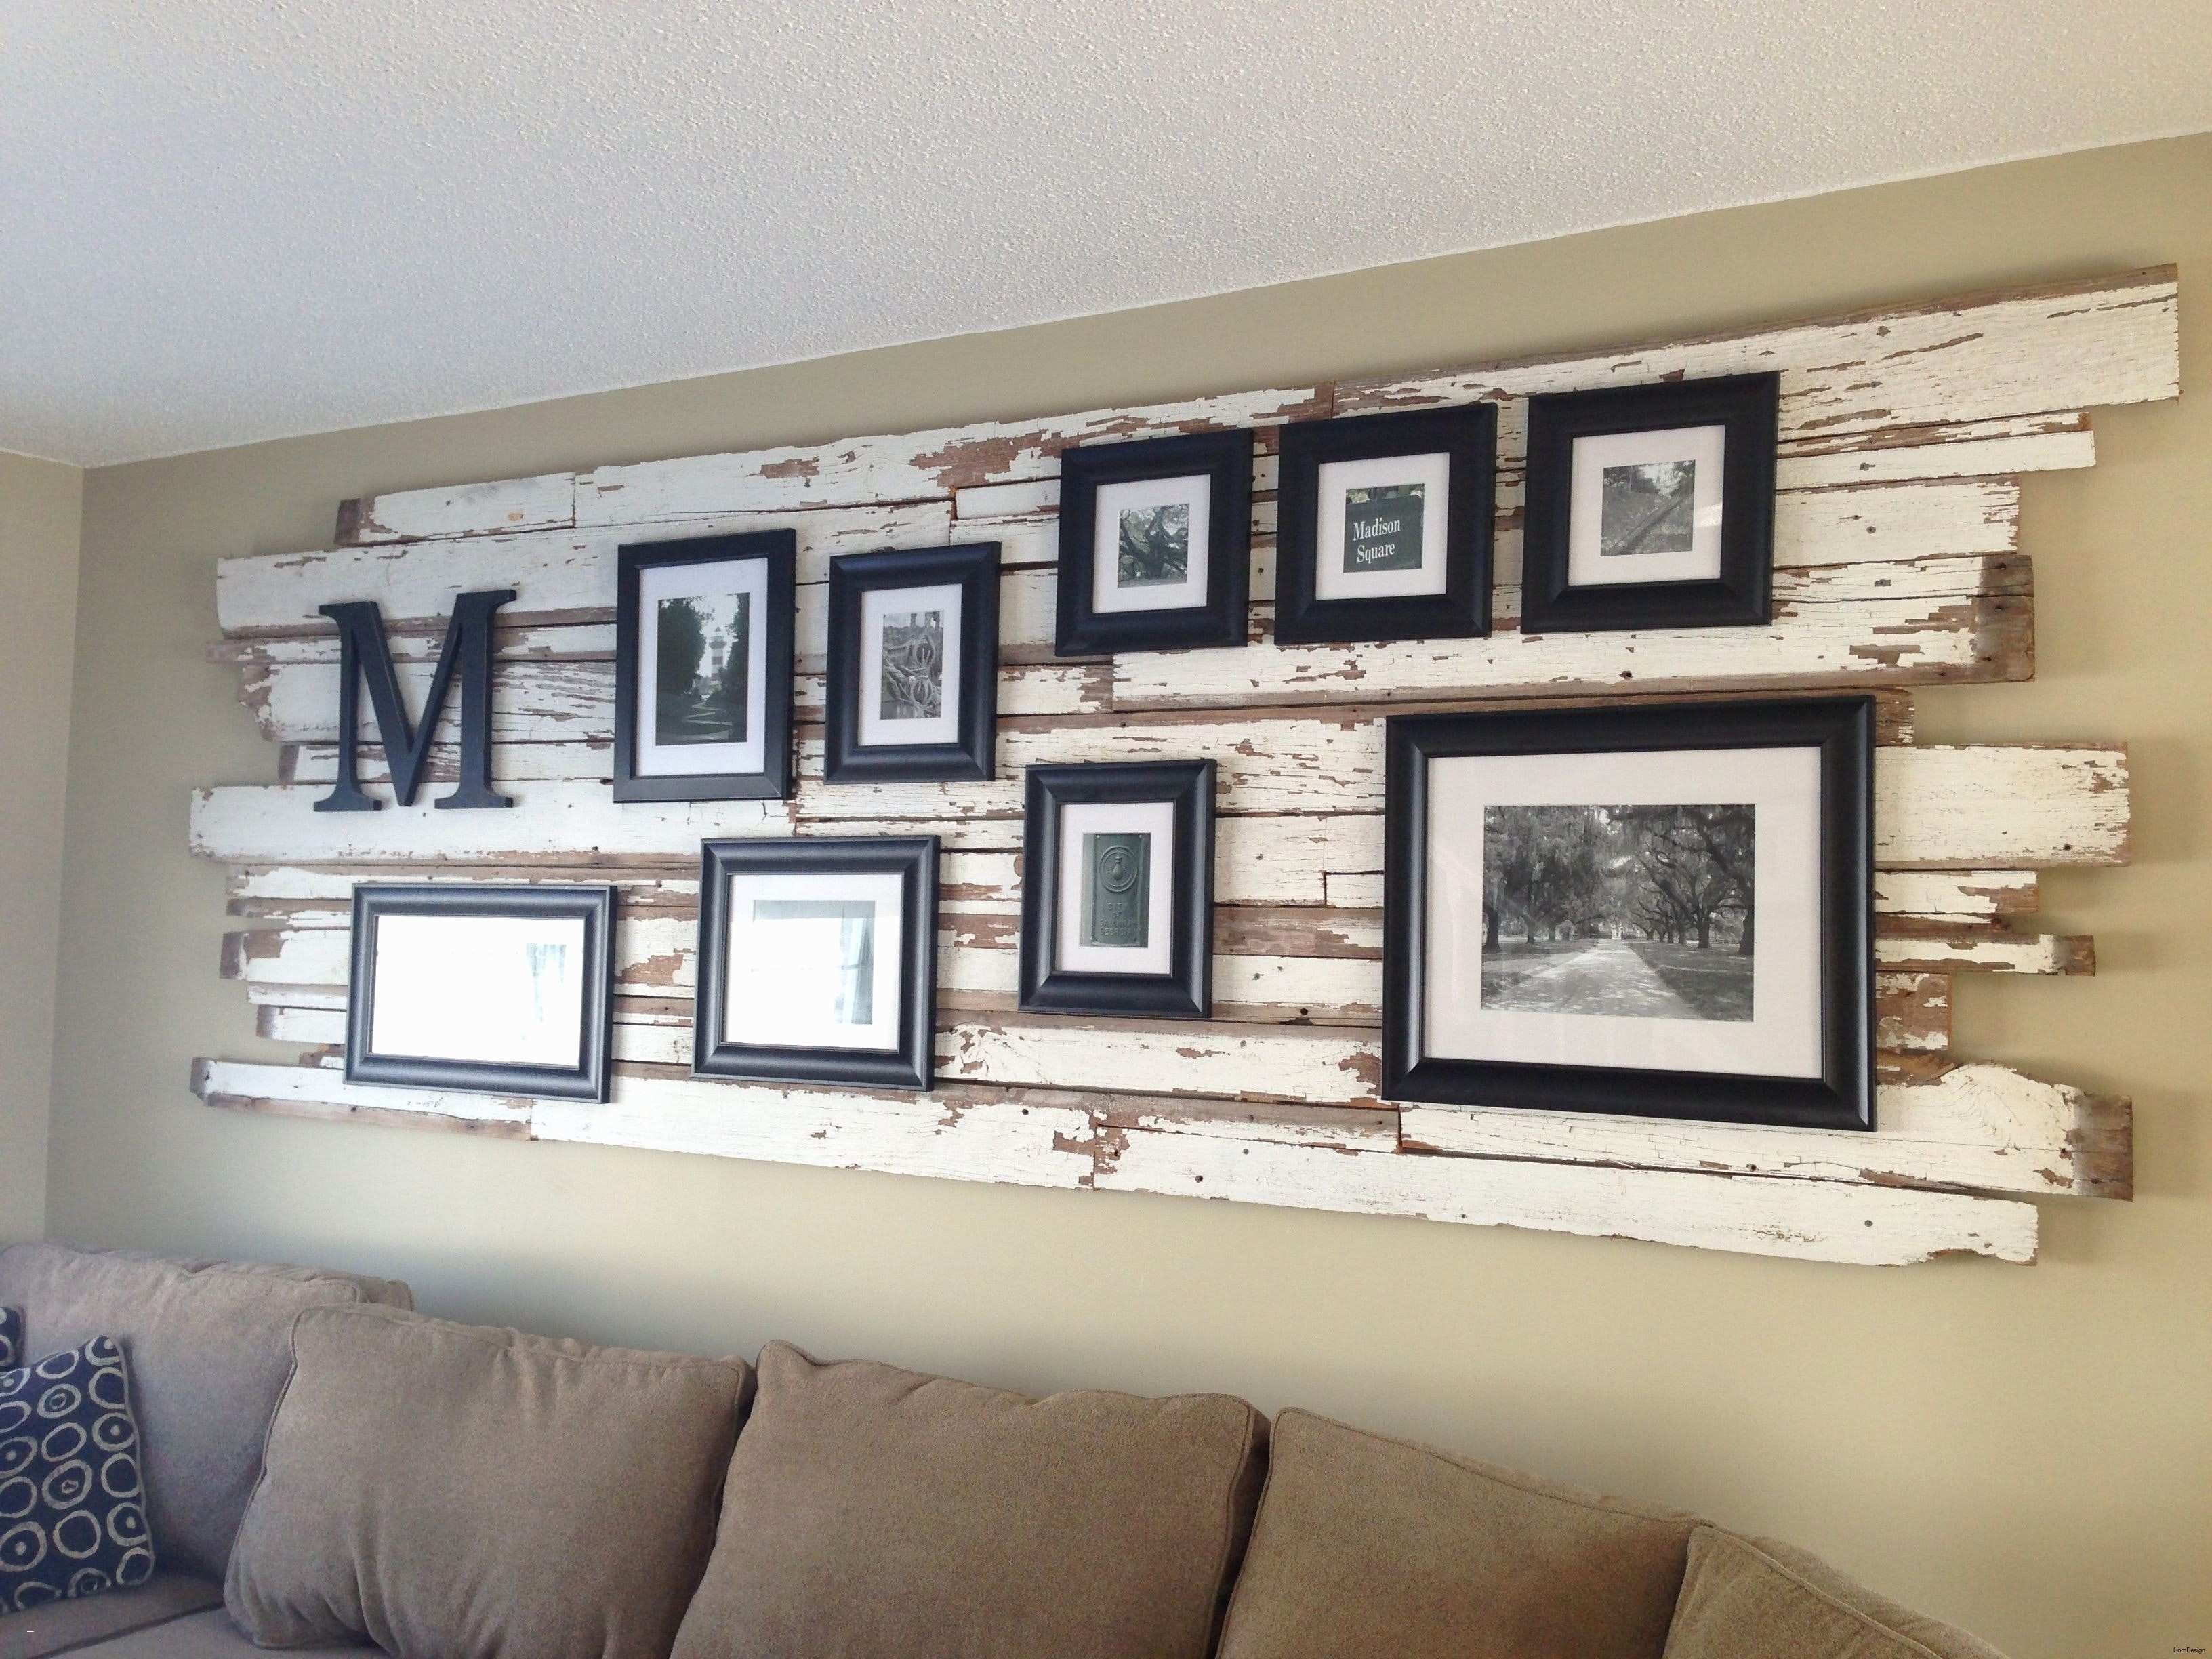 38 New Frame Wall Art